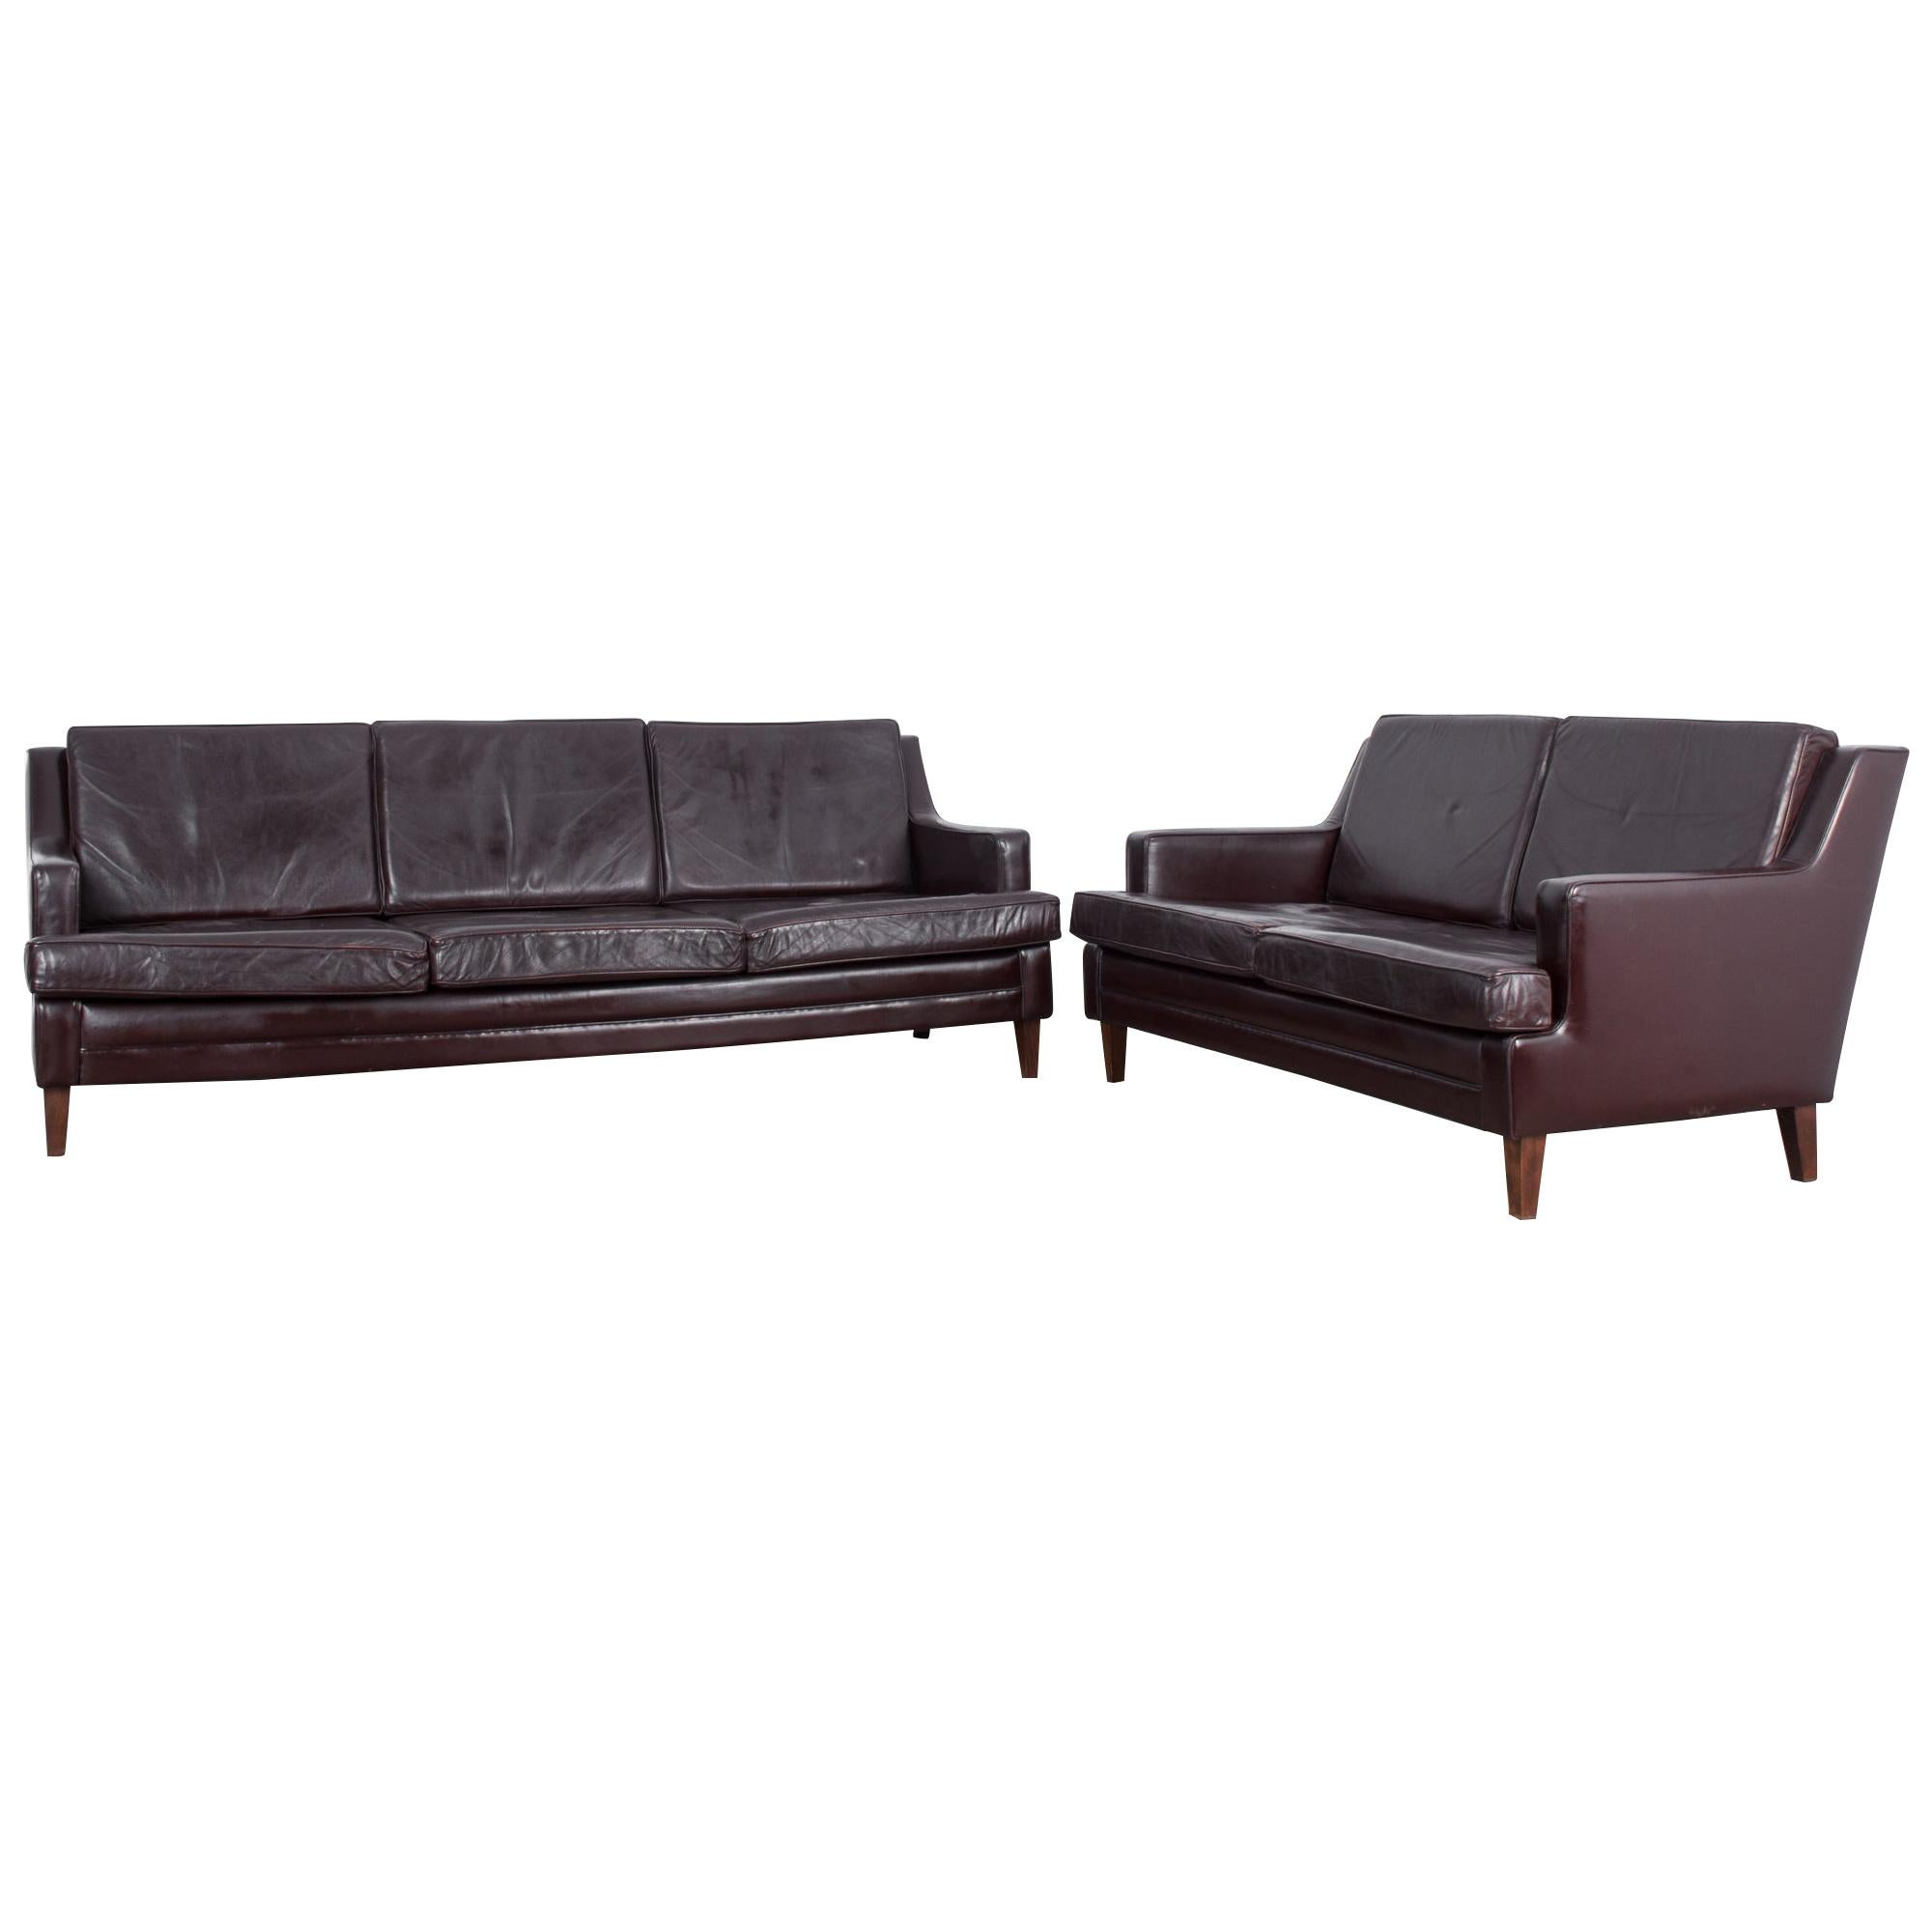 Mid-Century Modern Walter Knoll Leather Sofas, Set of Two